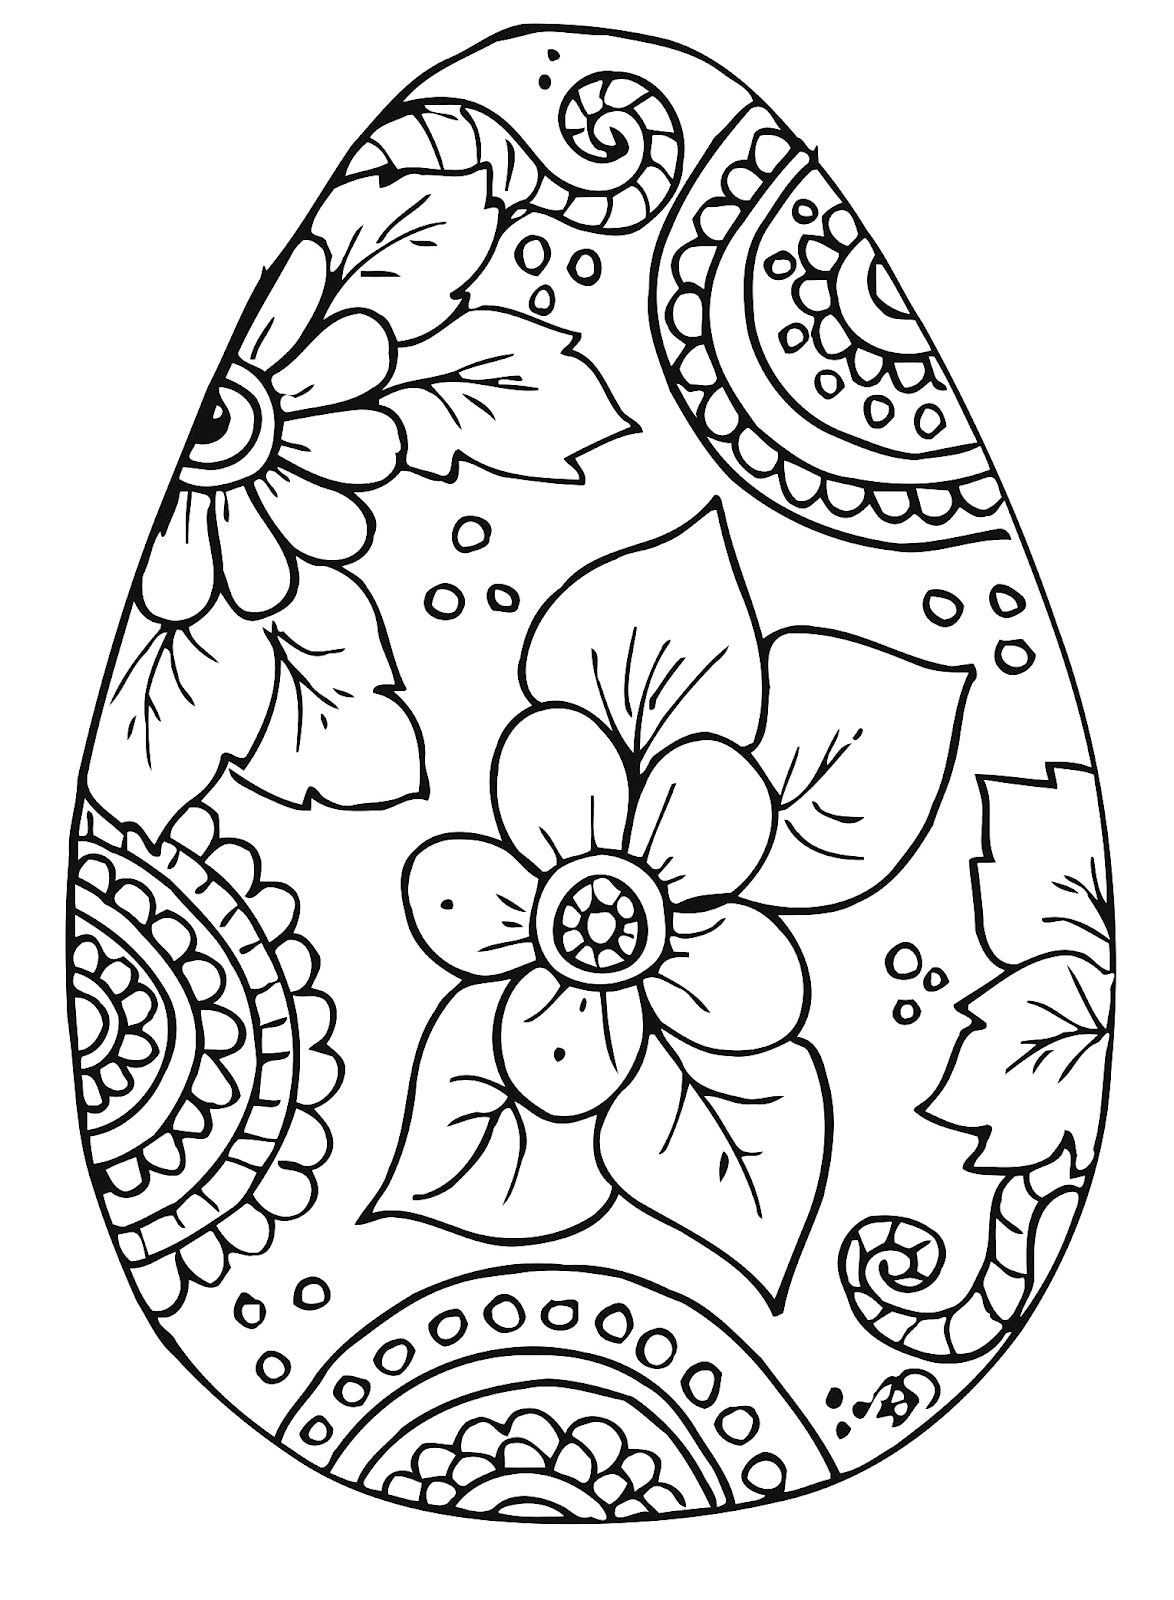 Easter Coloring 10 Cool Free Printable Easter Coloring Pages for Gallery Of Easter Coloring14 Gallery